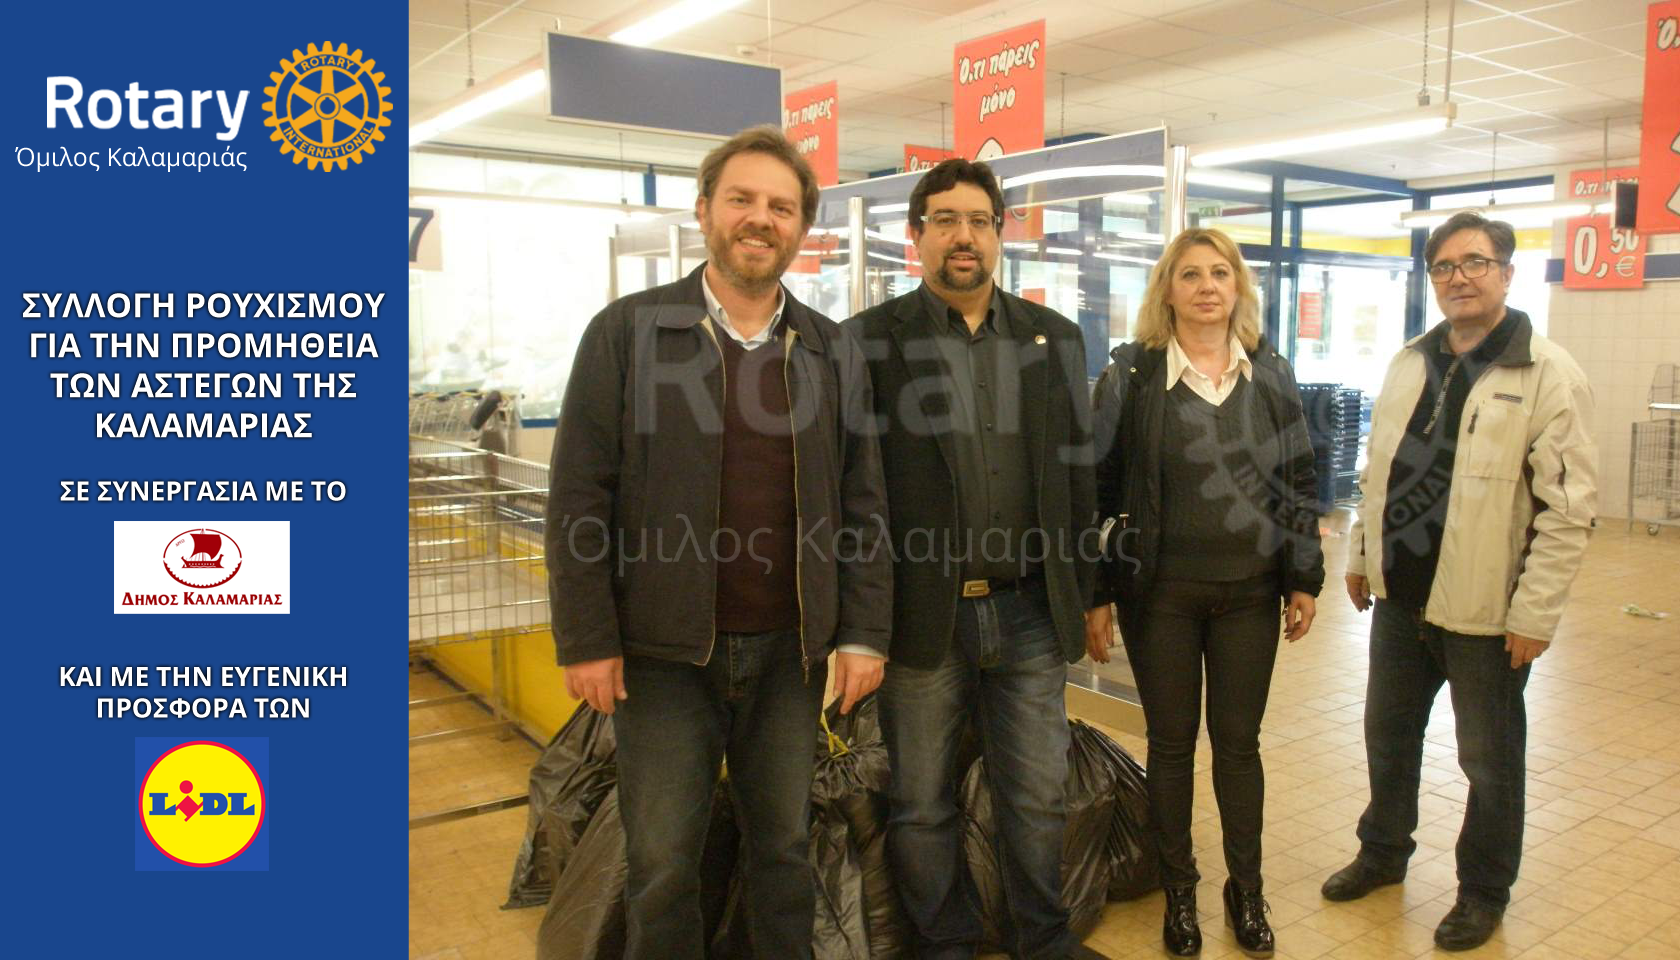 Rotary-Club-Kalamaria-and-Lidl-give-clothes-for-homeles-006